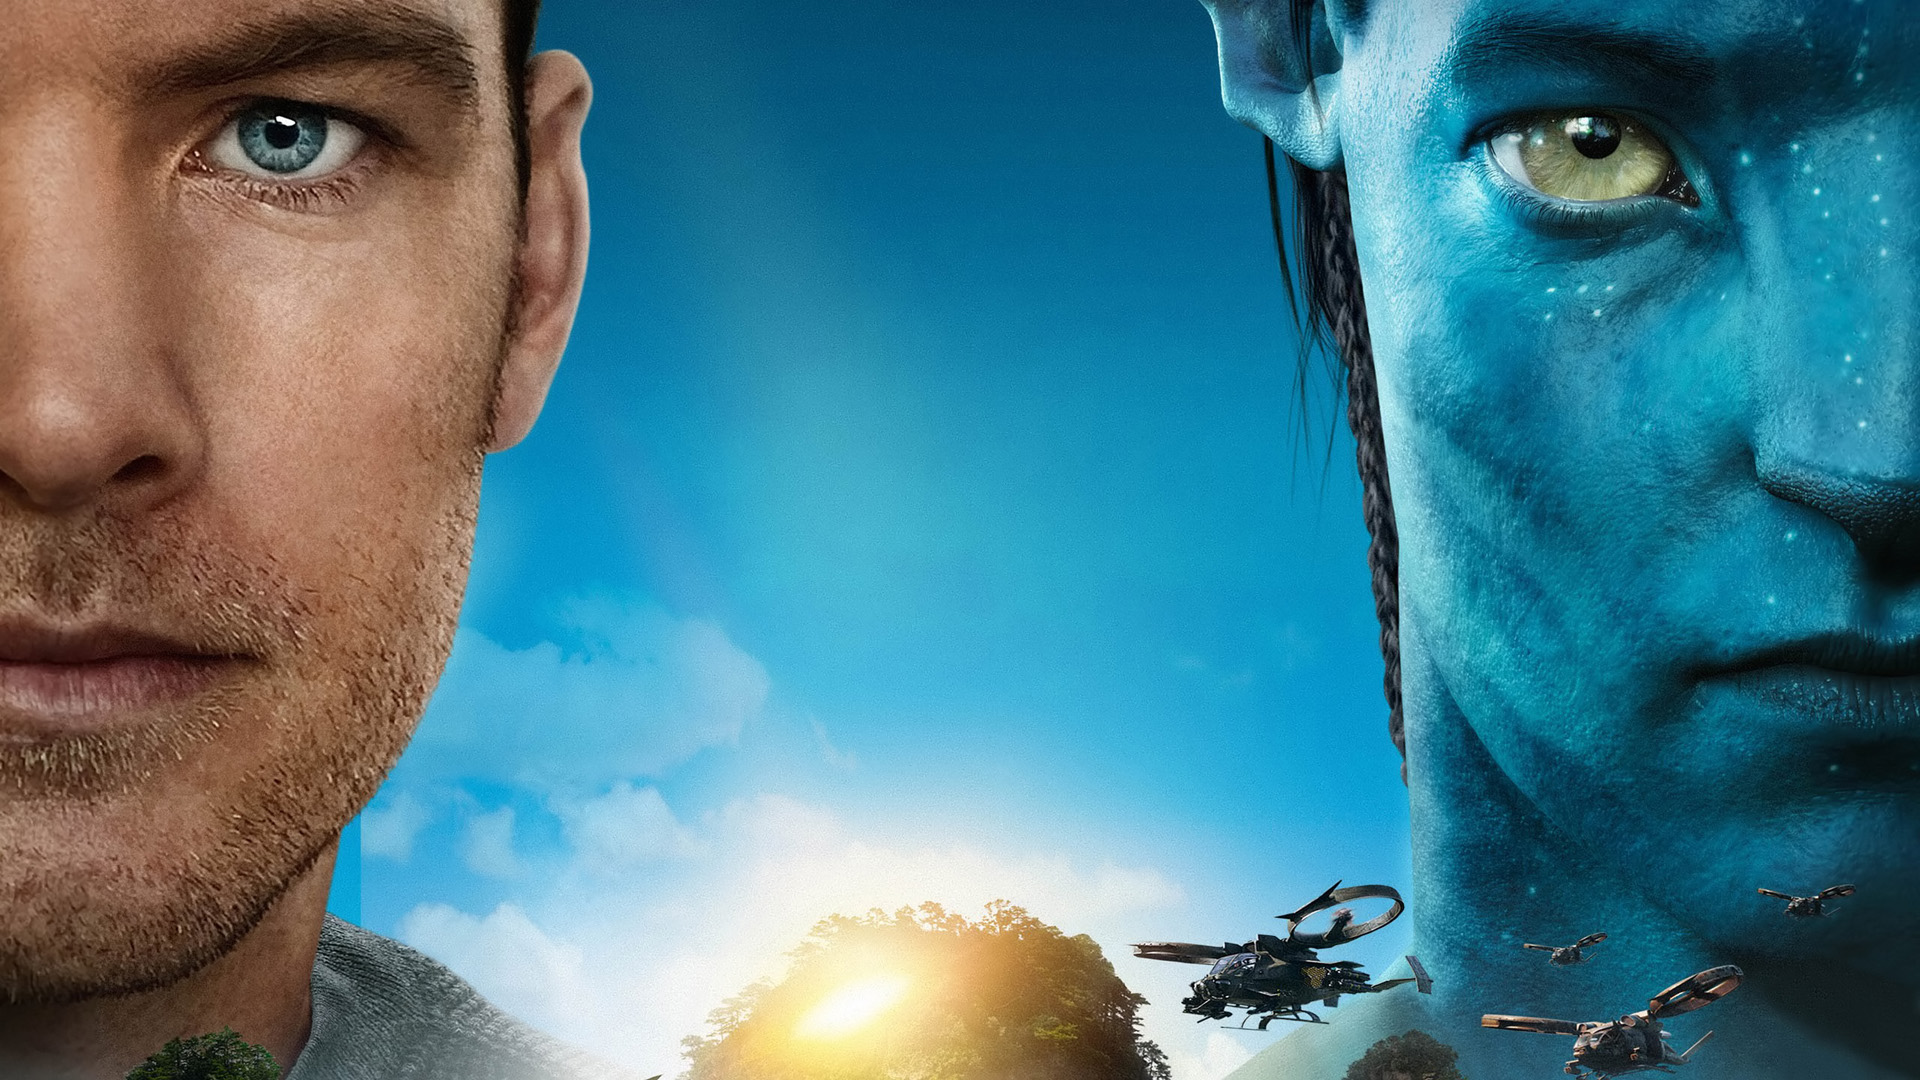 Avatar Movie Wallpapers Collection 6 (1920 x 1080 pixels) | Digital ...